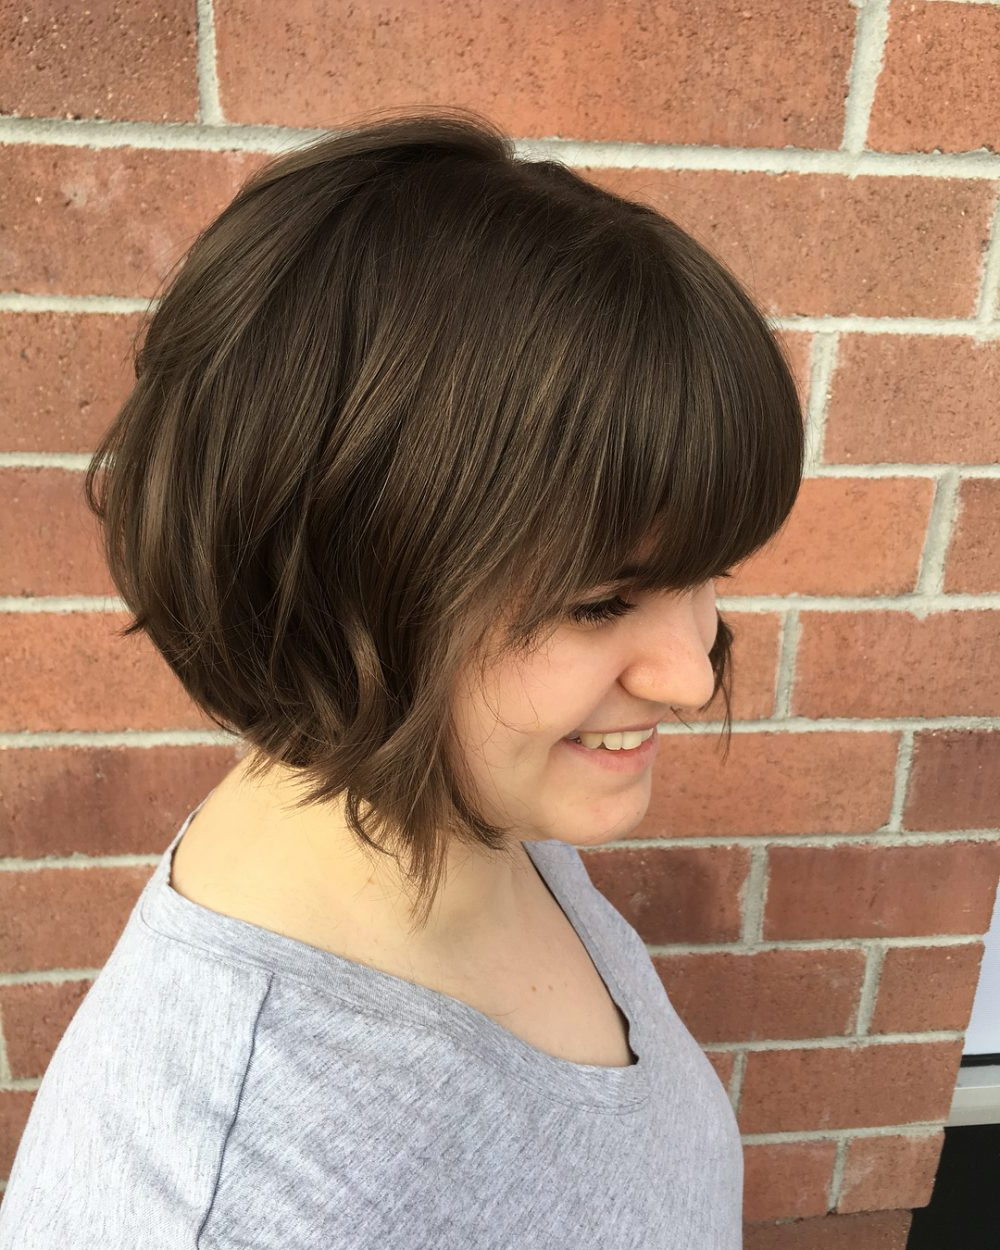 34 Greatest Short Haircuts And Hairstyles For Thick Hair For 2018 Within Short Haircuts For Thick Frizzy Hair (View 11 of 25)